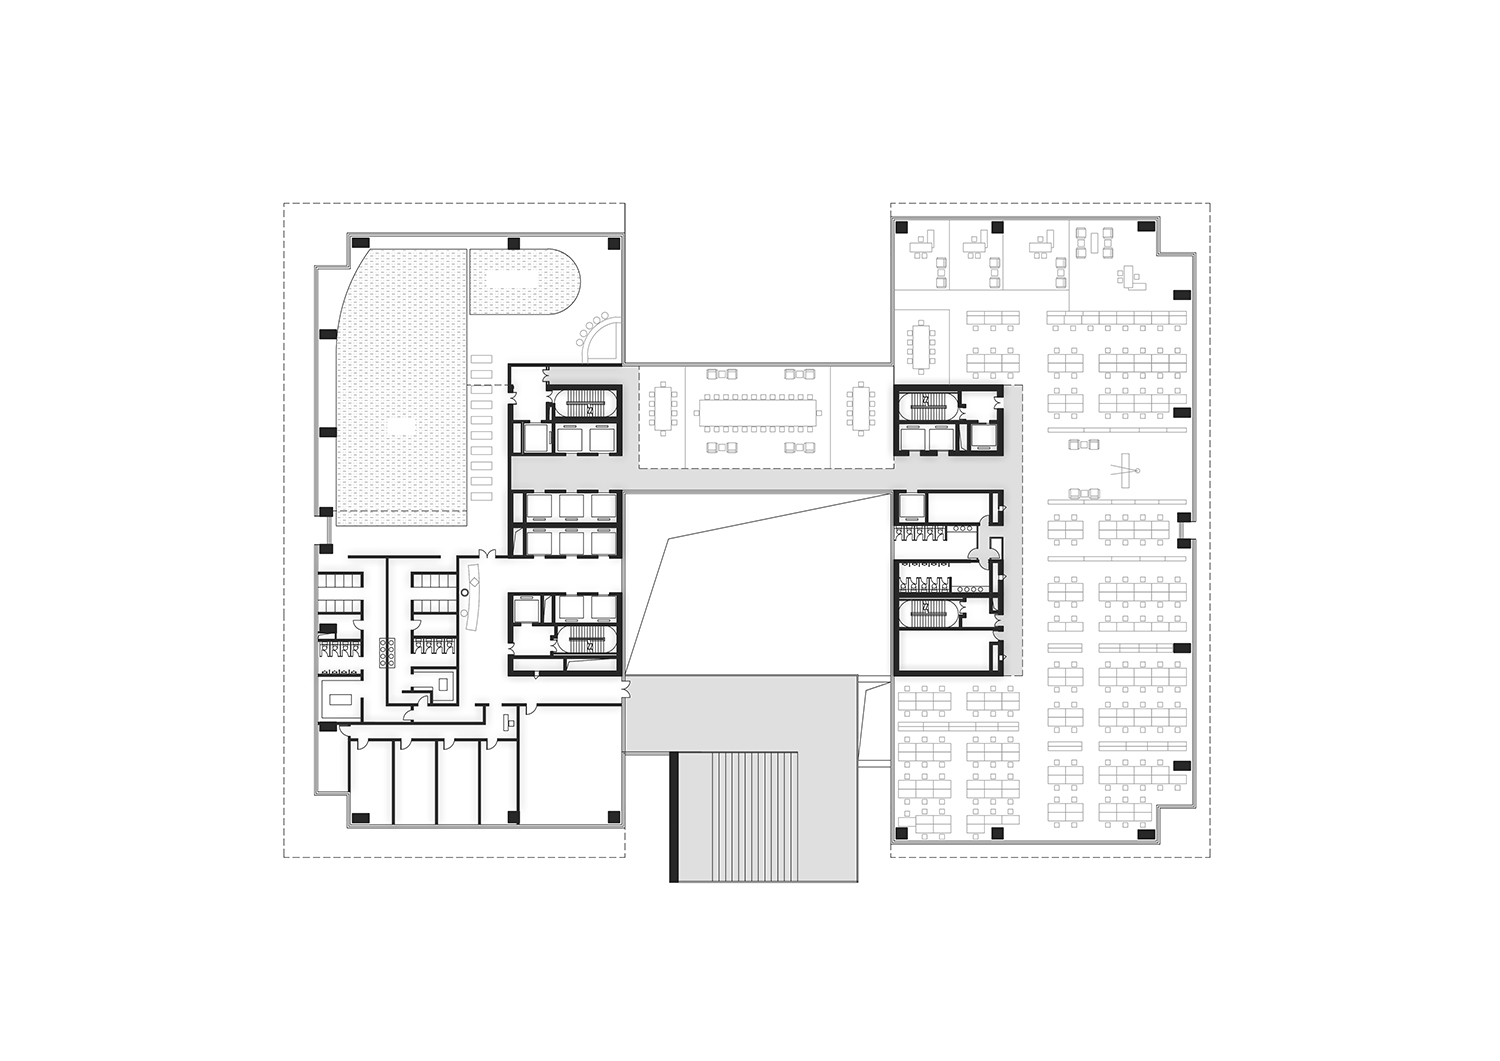 Recreation Floor Plan All renderings and drawings © Rocco Design Architects}